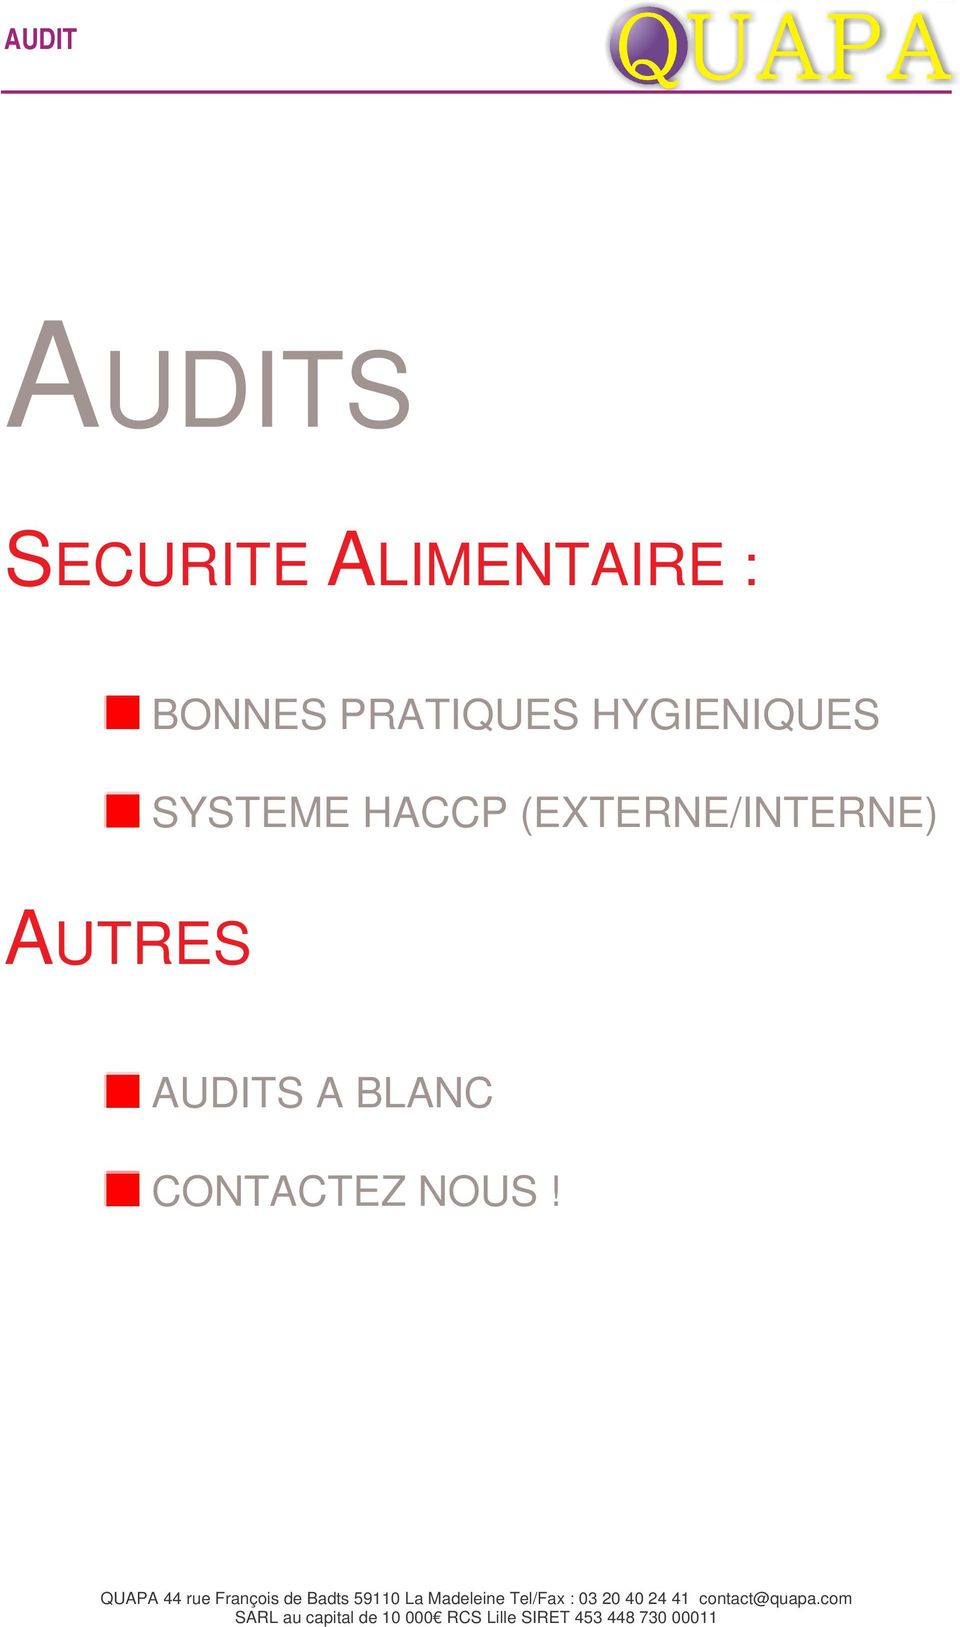 SYSTEME HACCP (EXTERNE/INTERNE)